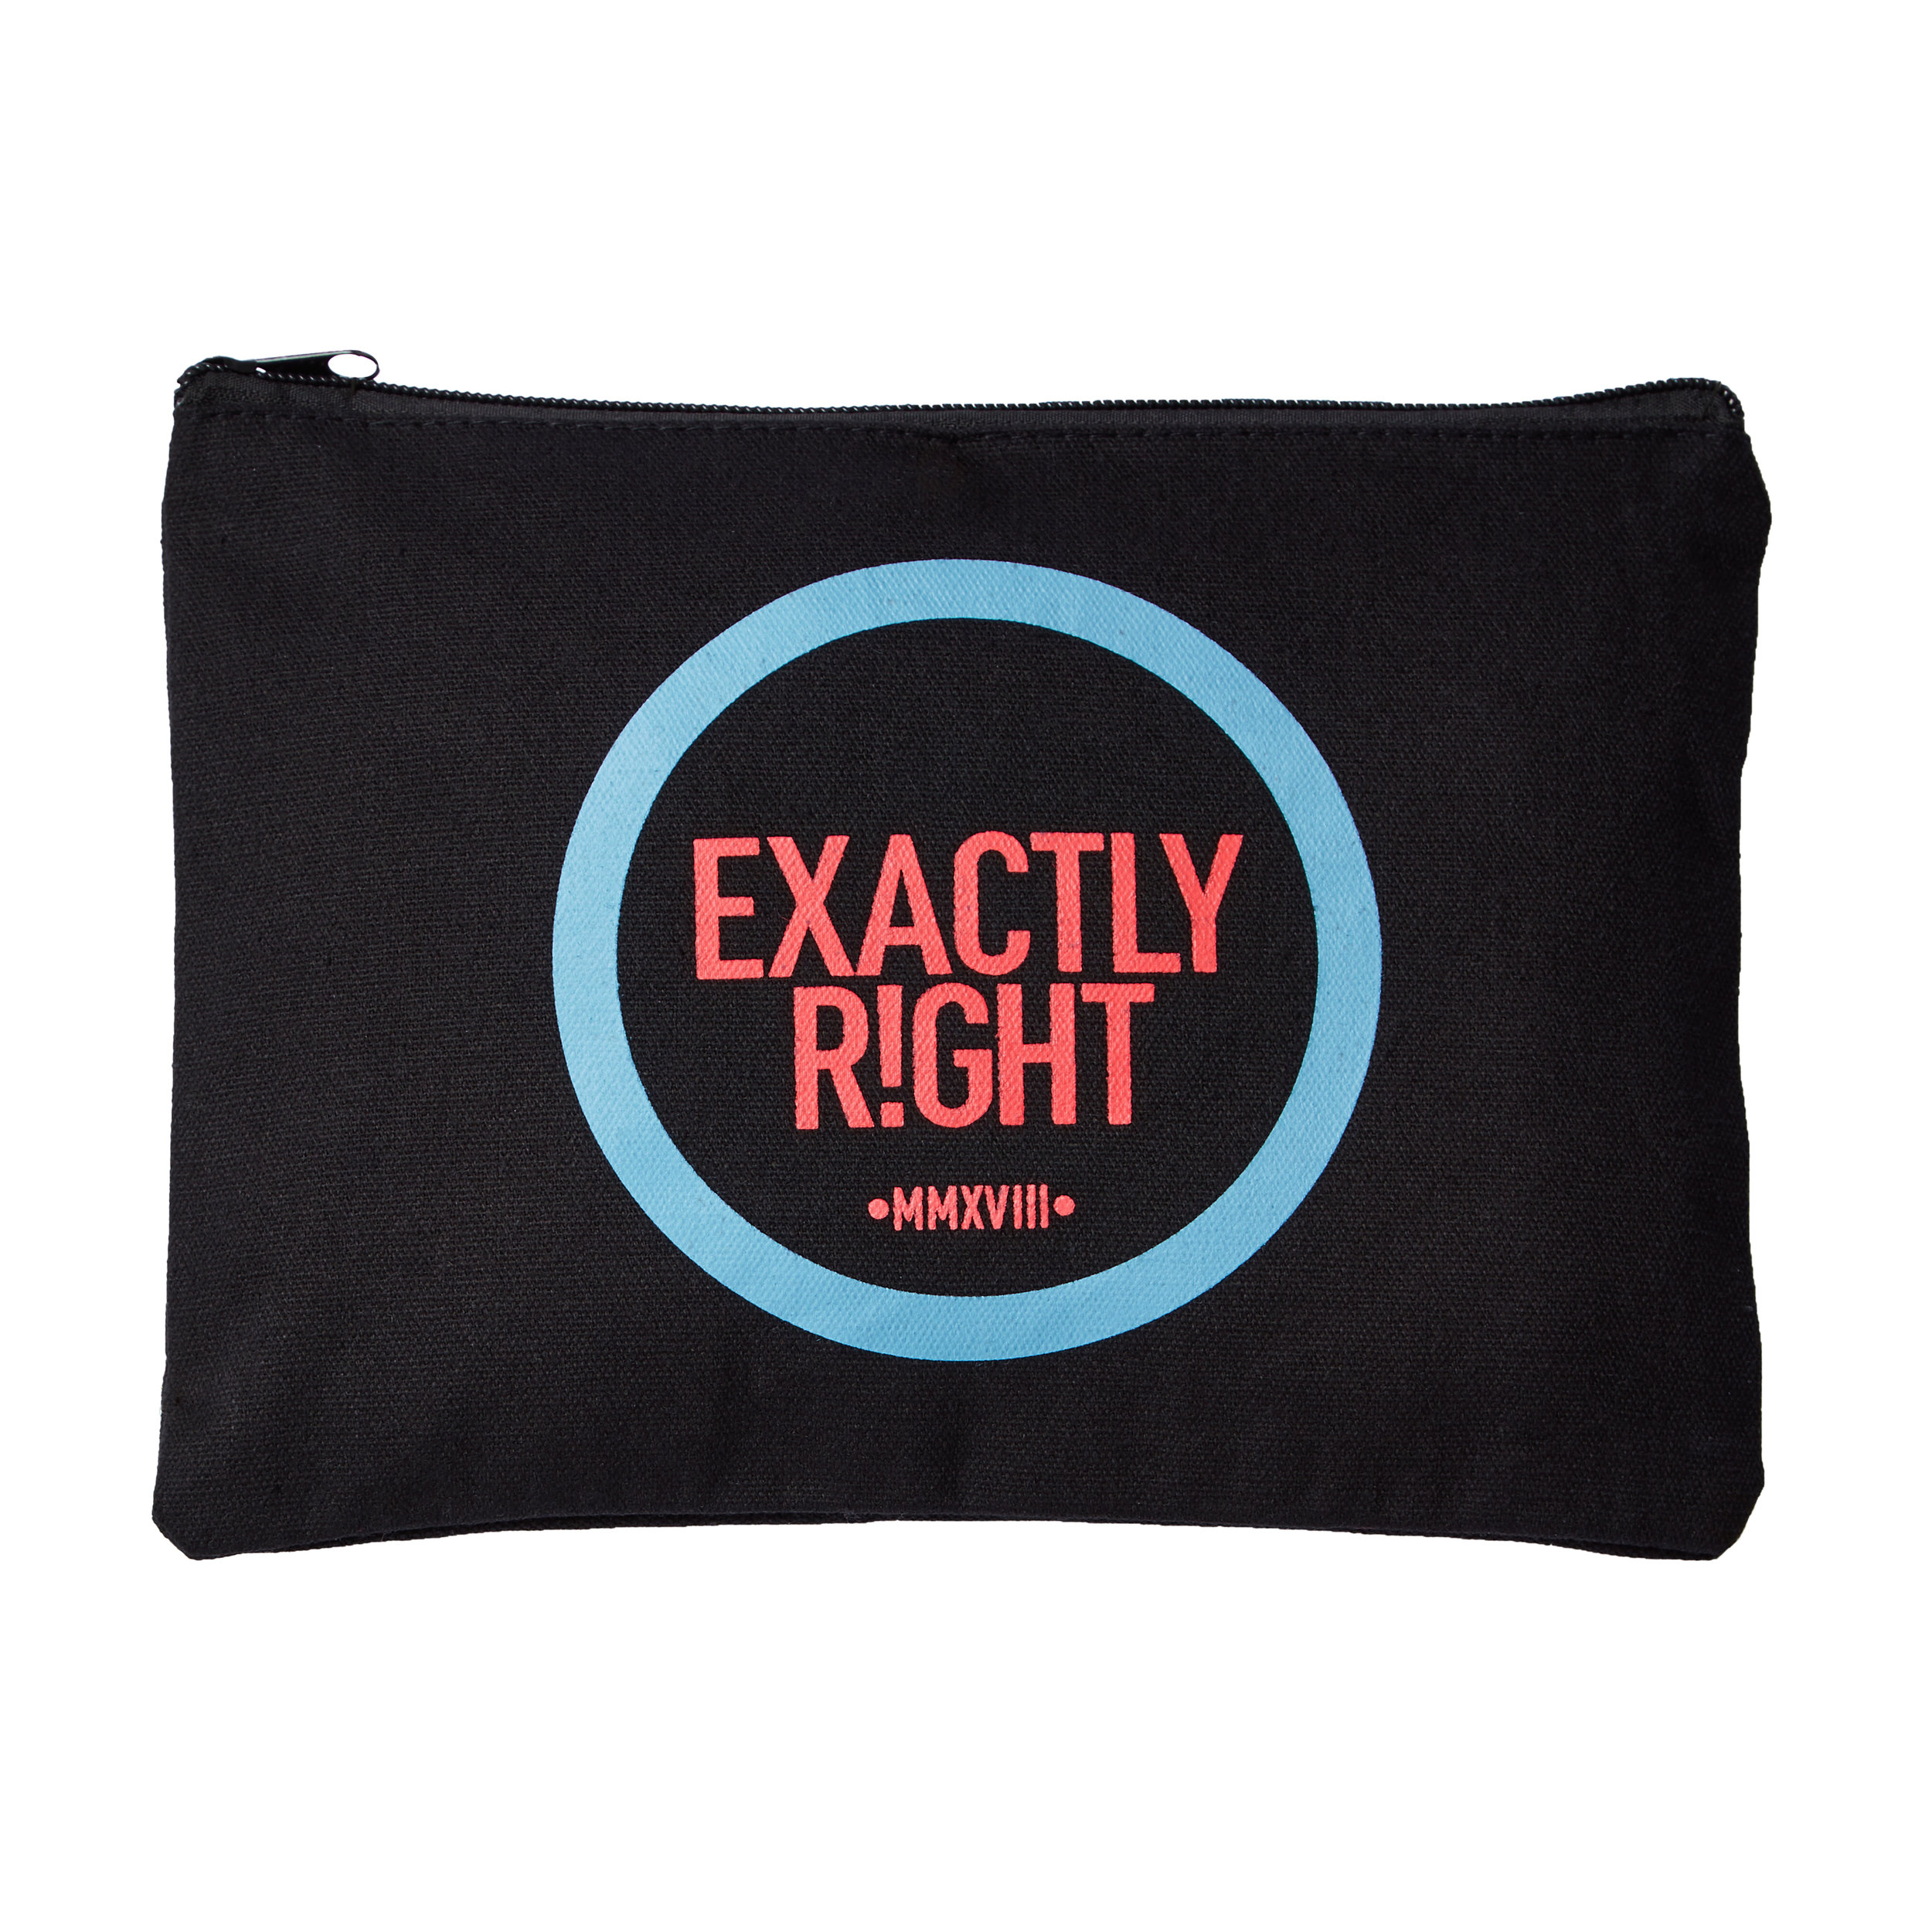 Exactly Right Pouch $15